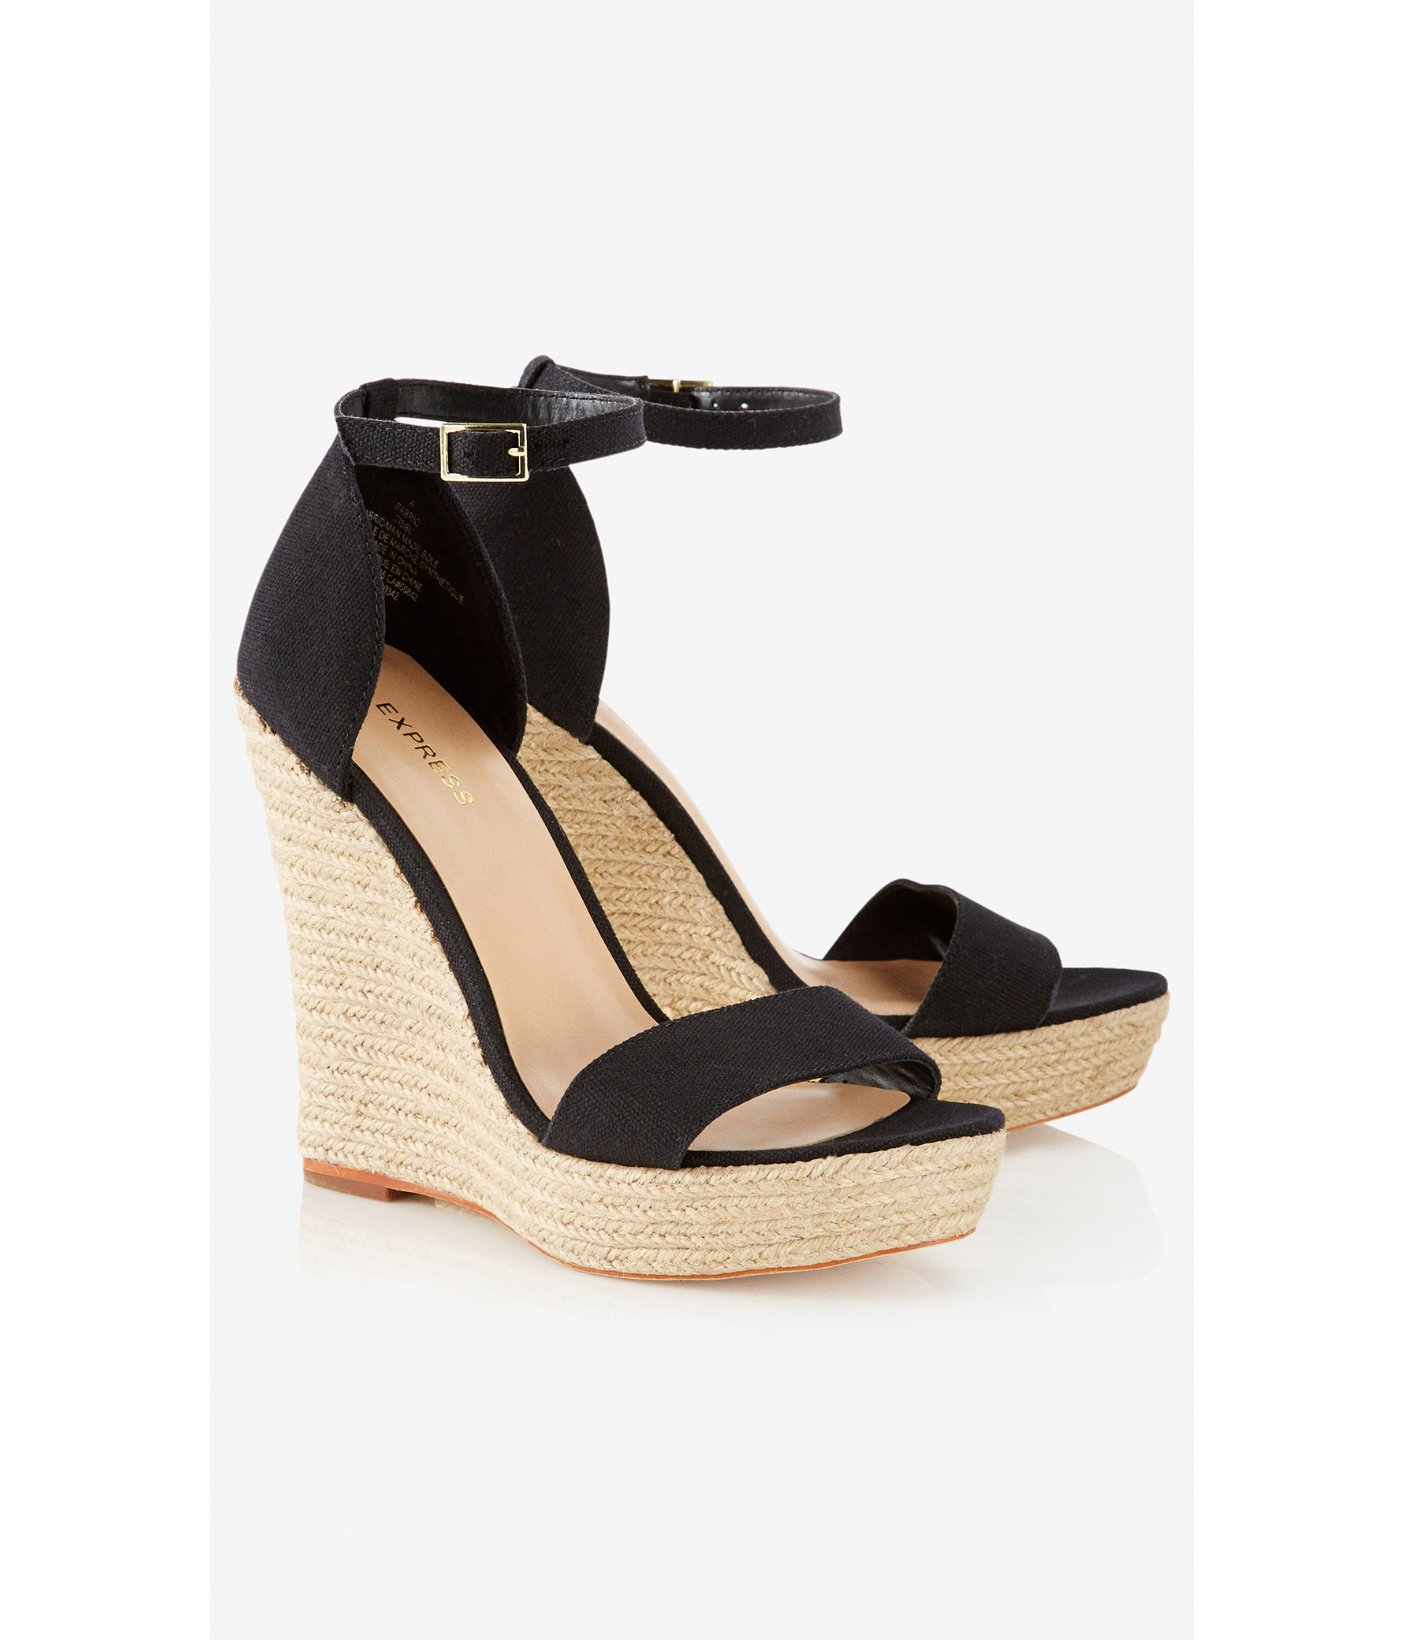 Express Espadrille Wedge Sandal In Black Lyst